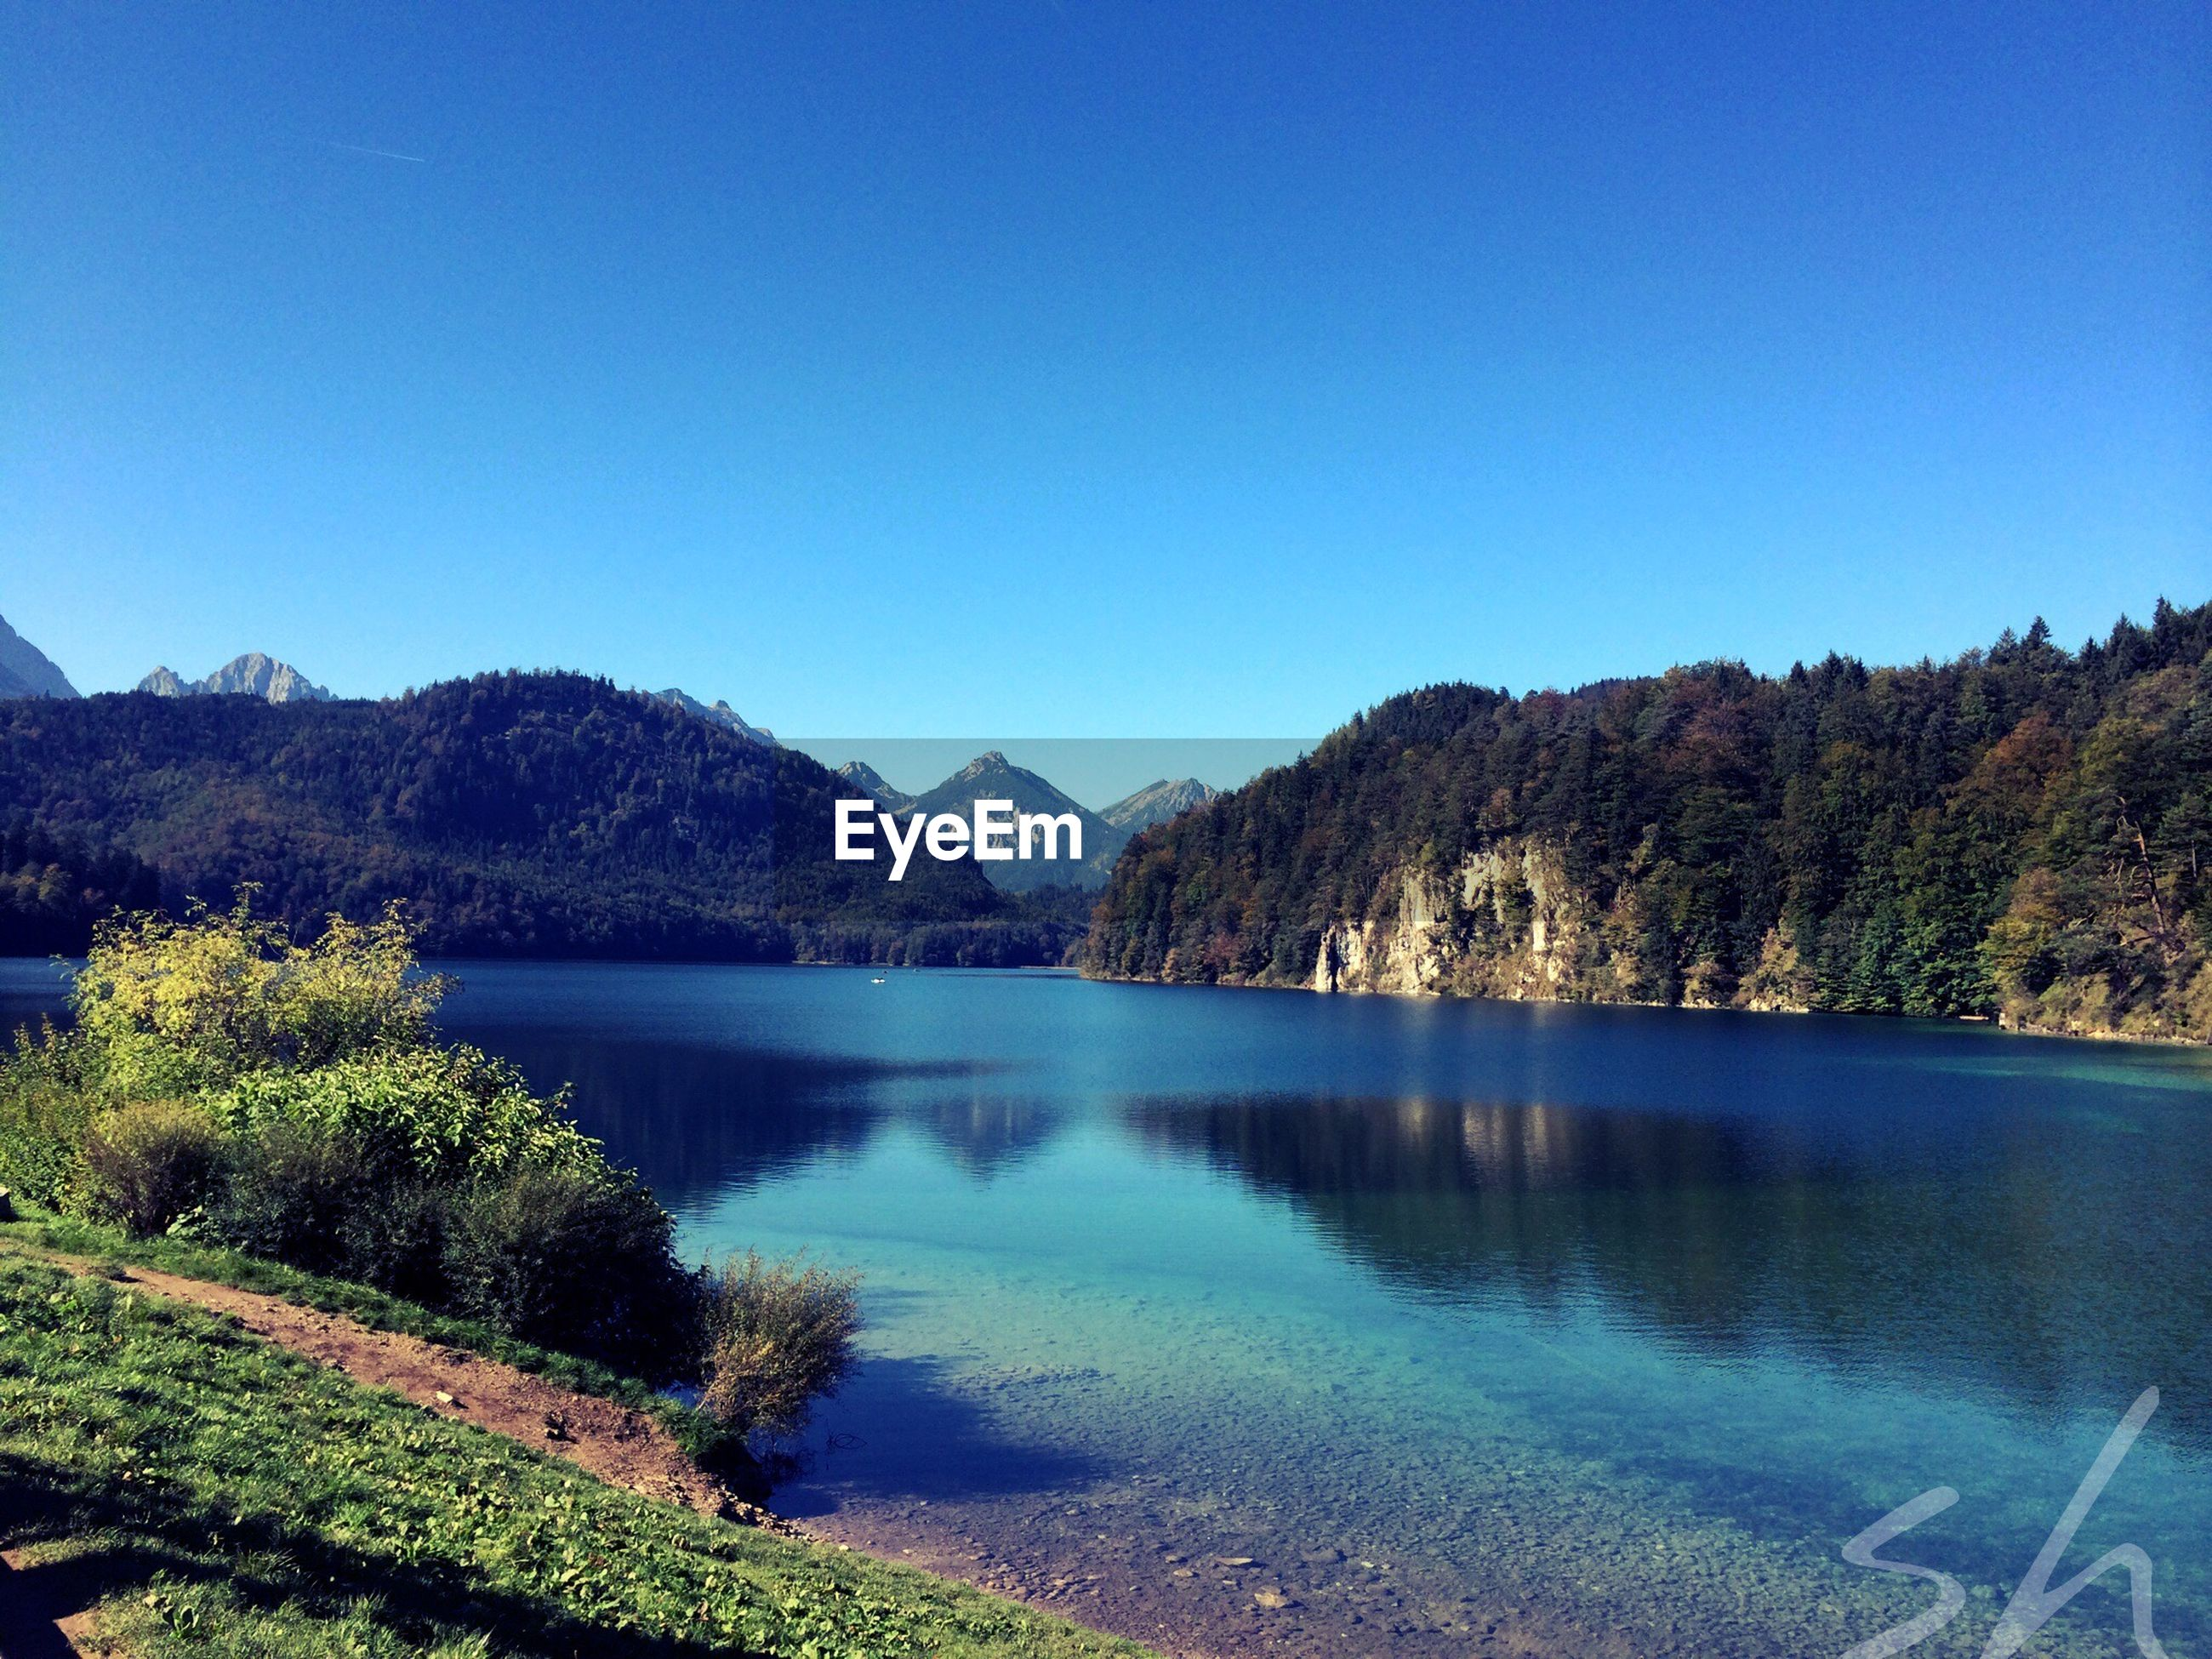 SCENIC VIEW OF BLUE LAKE AGAINST MOUNTAINS